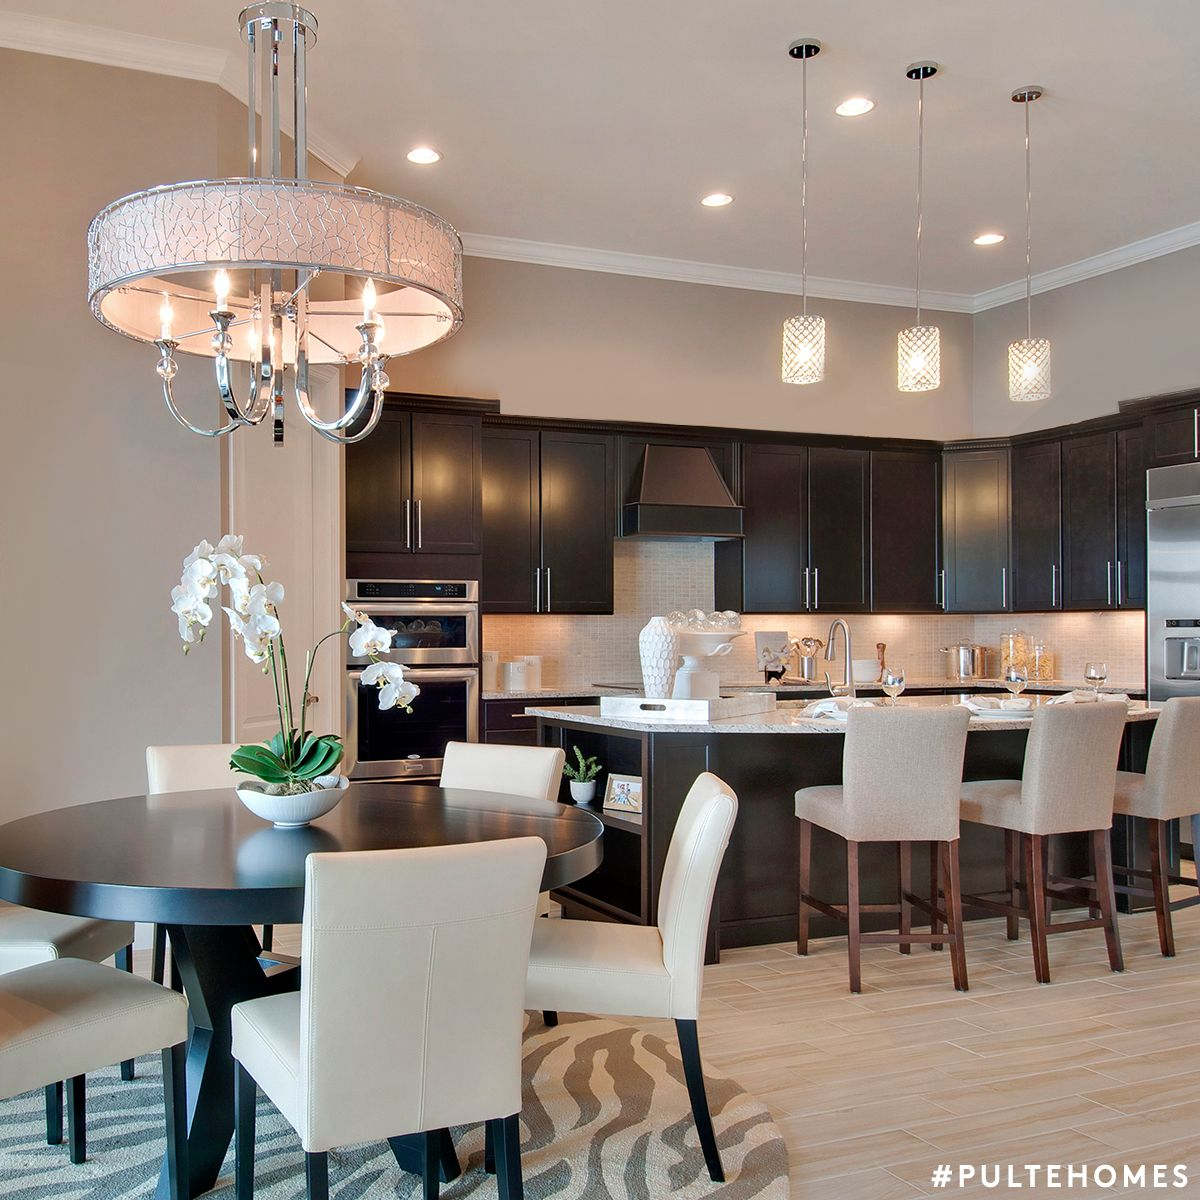 An open floor plan with shades of brown and creamy whites is both warm and inviting